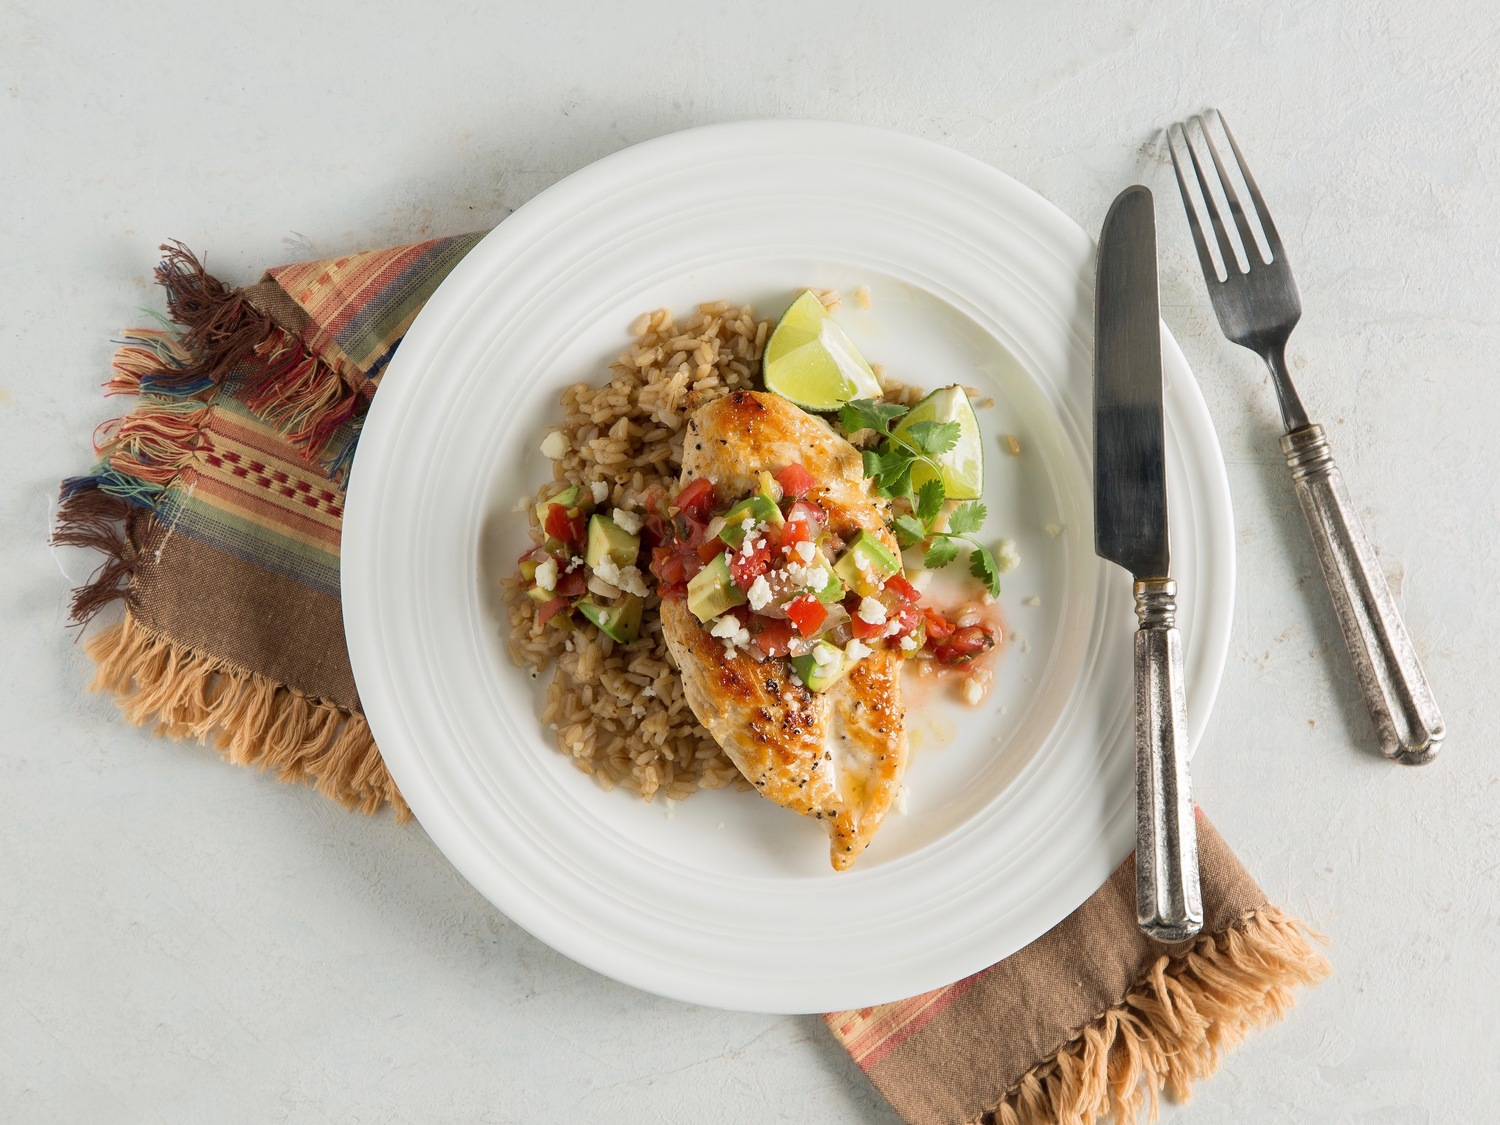 Tomato avocado chicken and rice meal idea from eMeals.com.